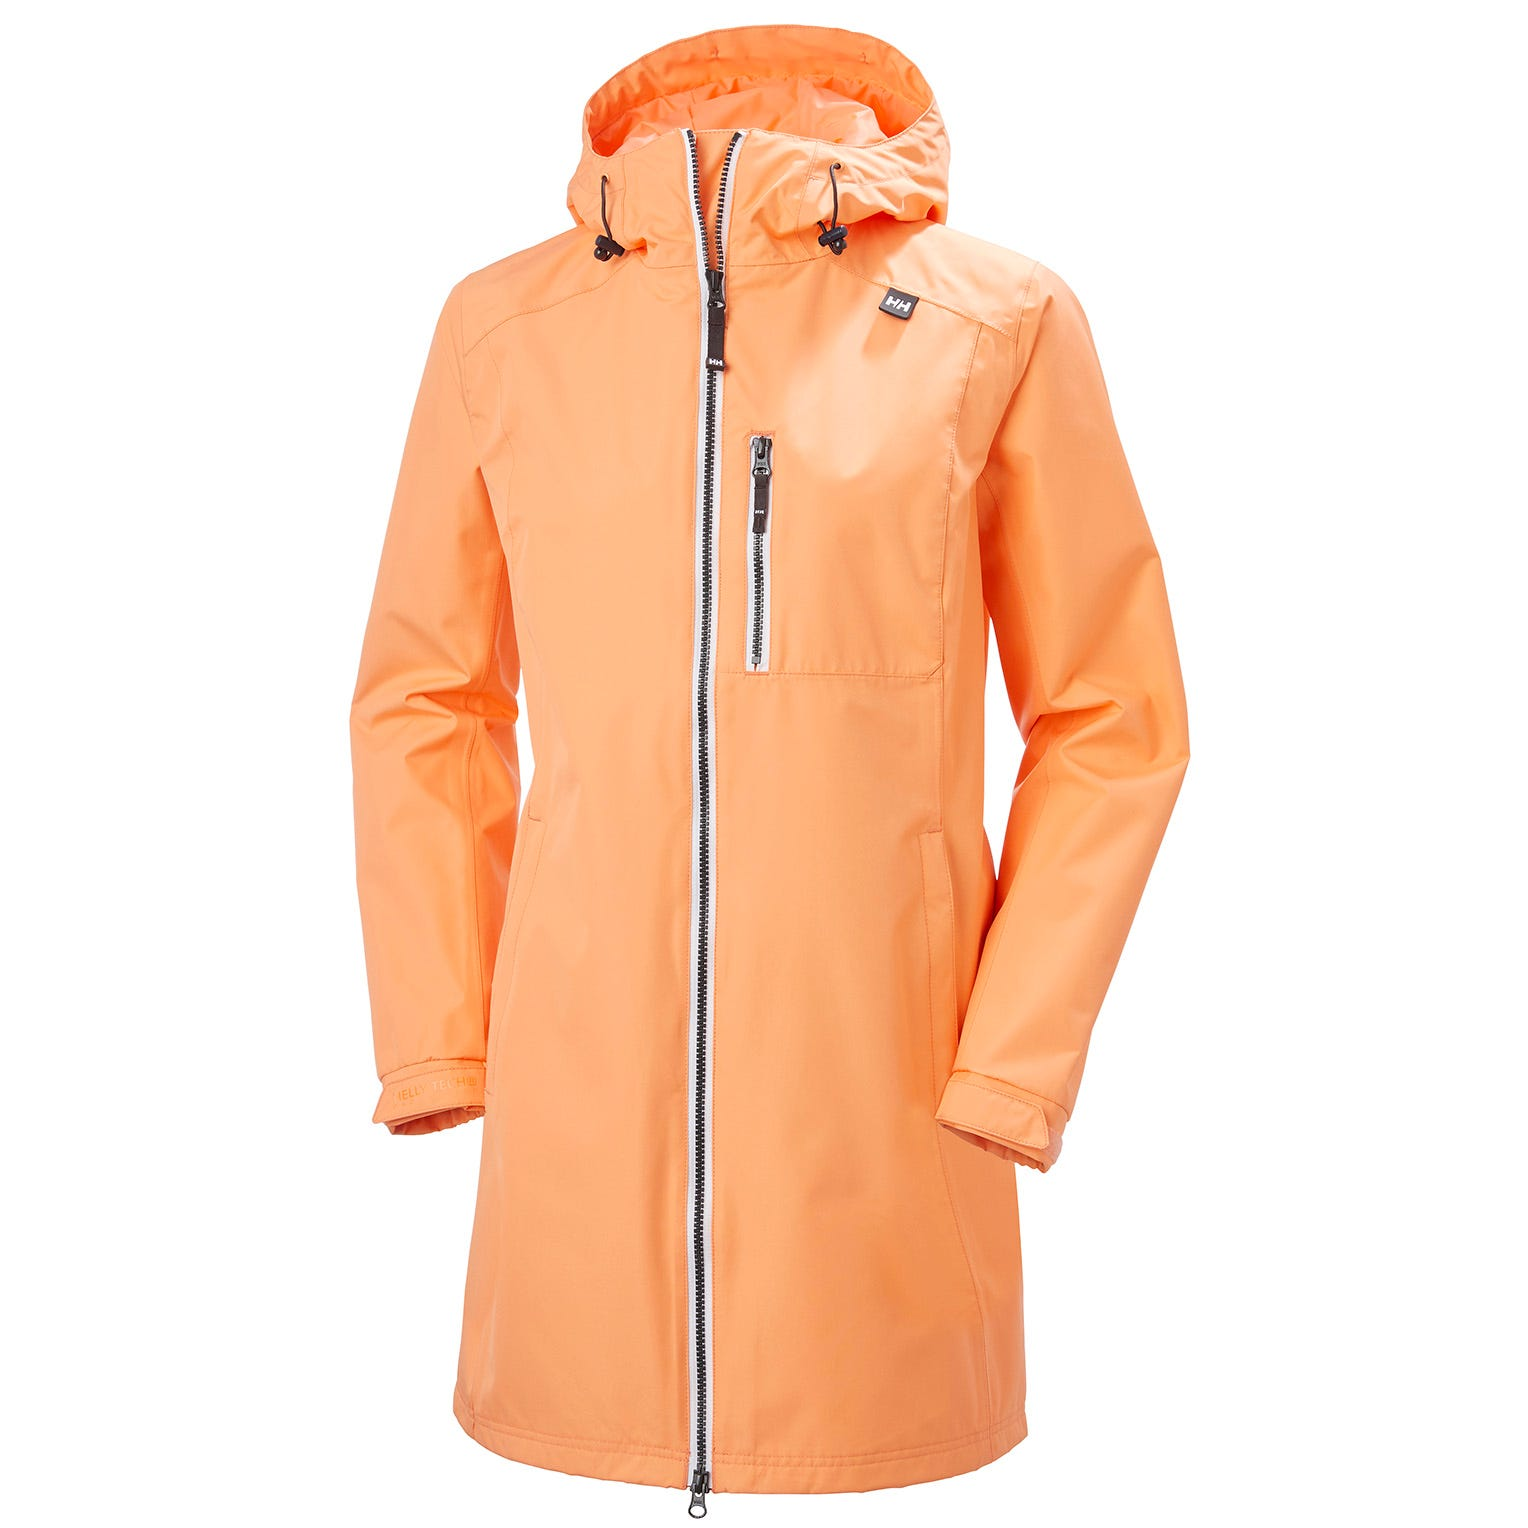 Womens Long Belfast 3/4 Length Rain Jacket | Helly Hansen Womens Orange XL